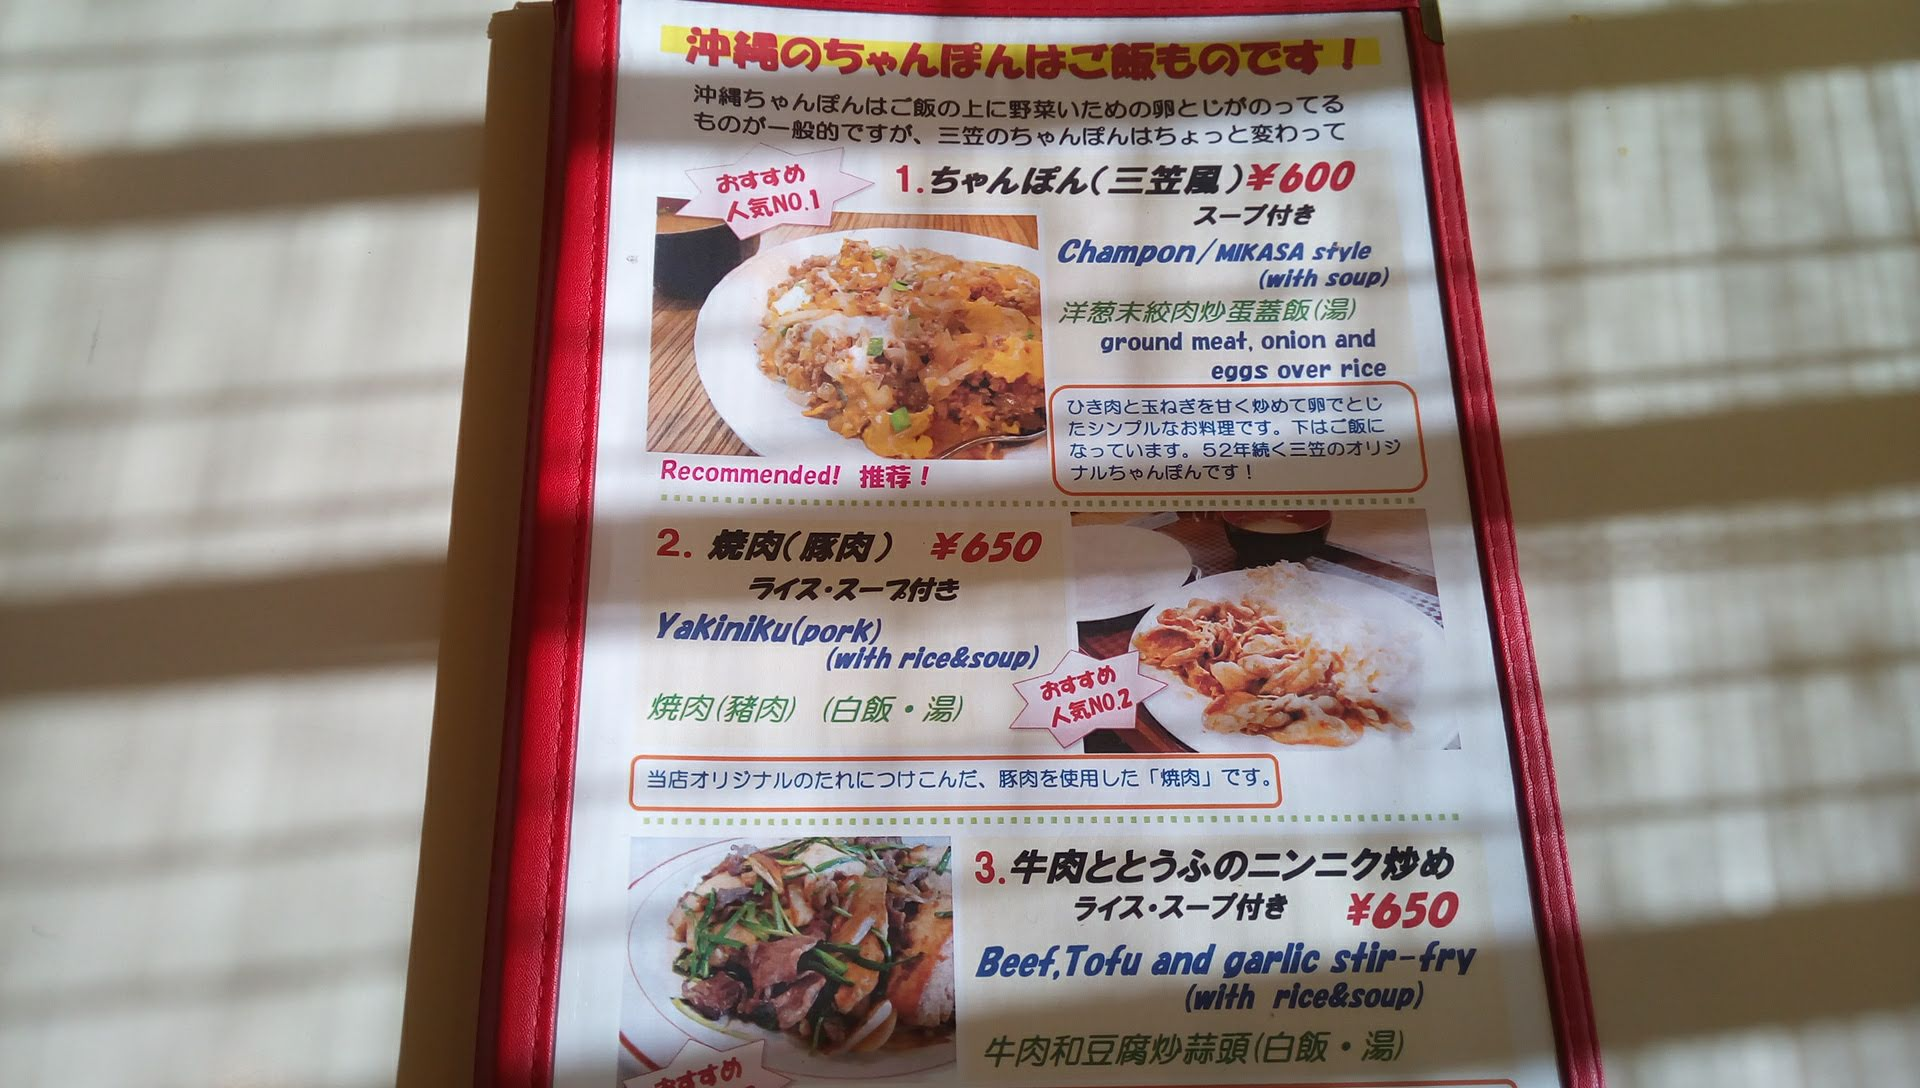 the menu of Mikasa 1